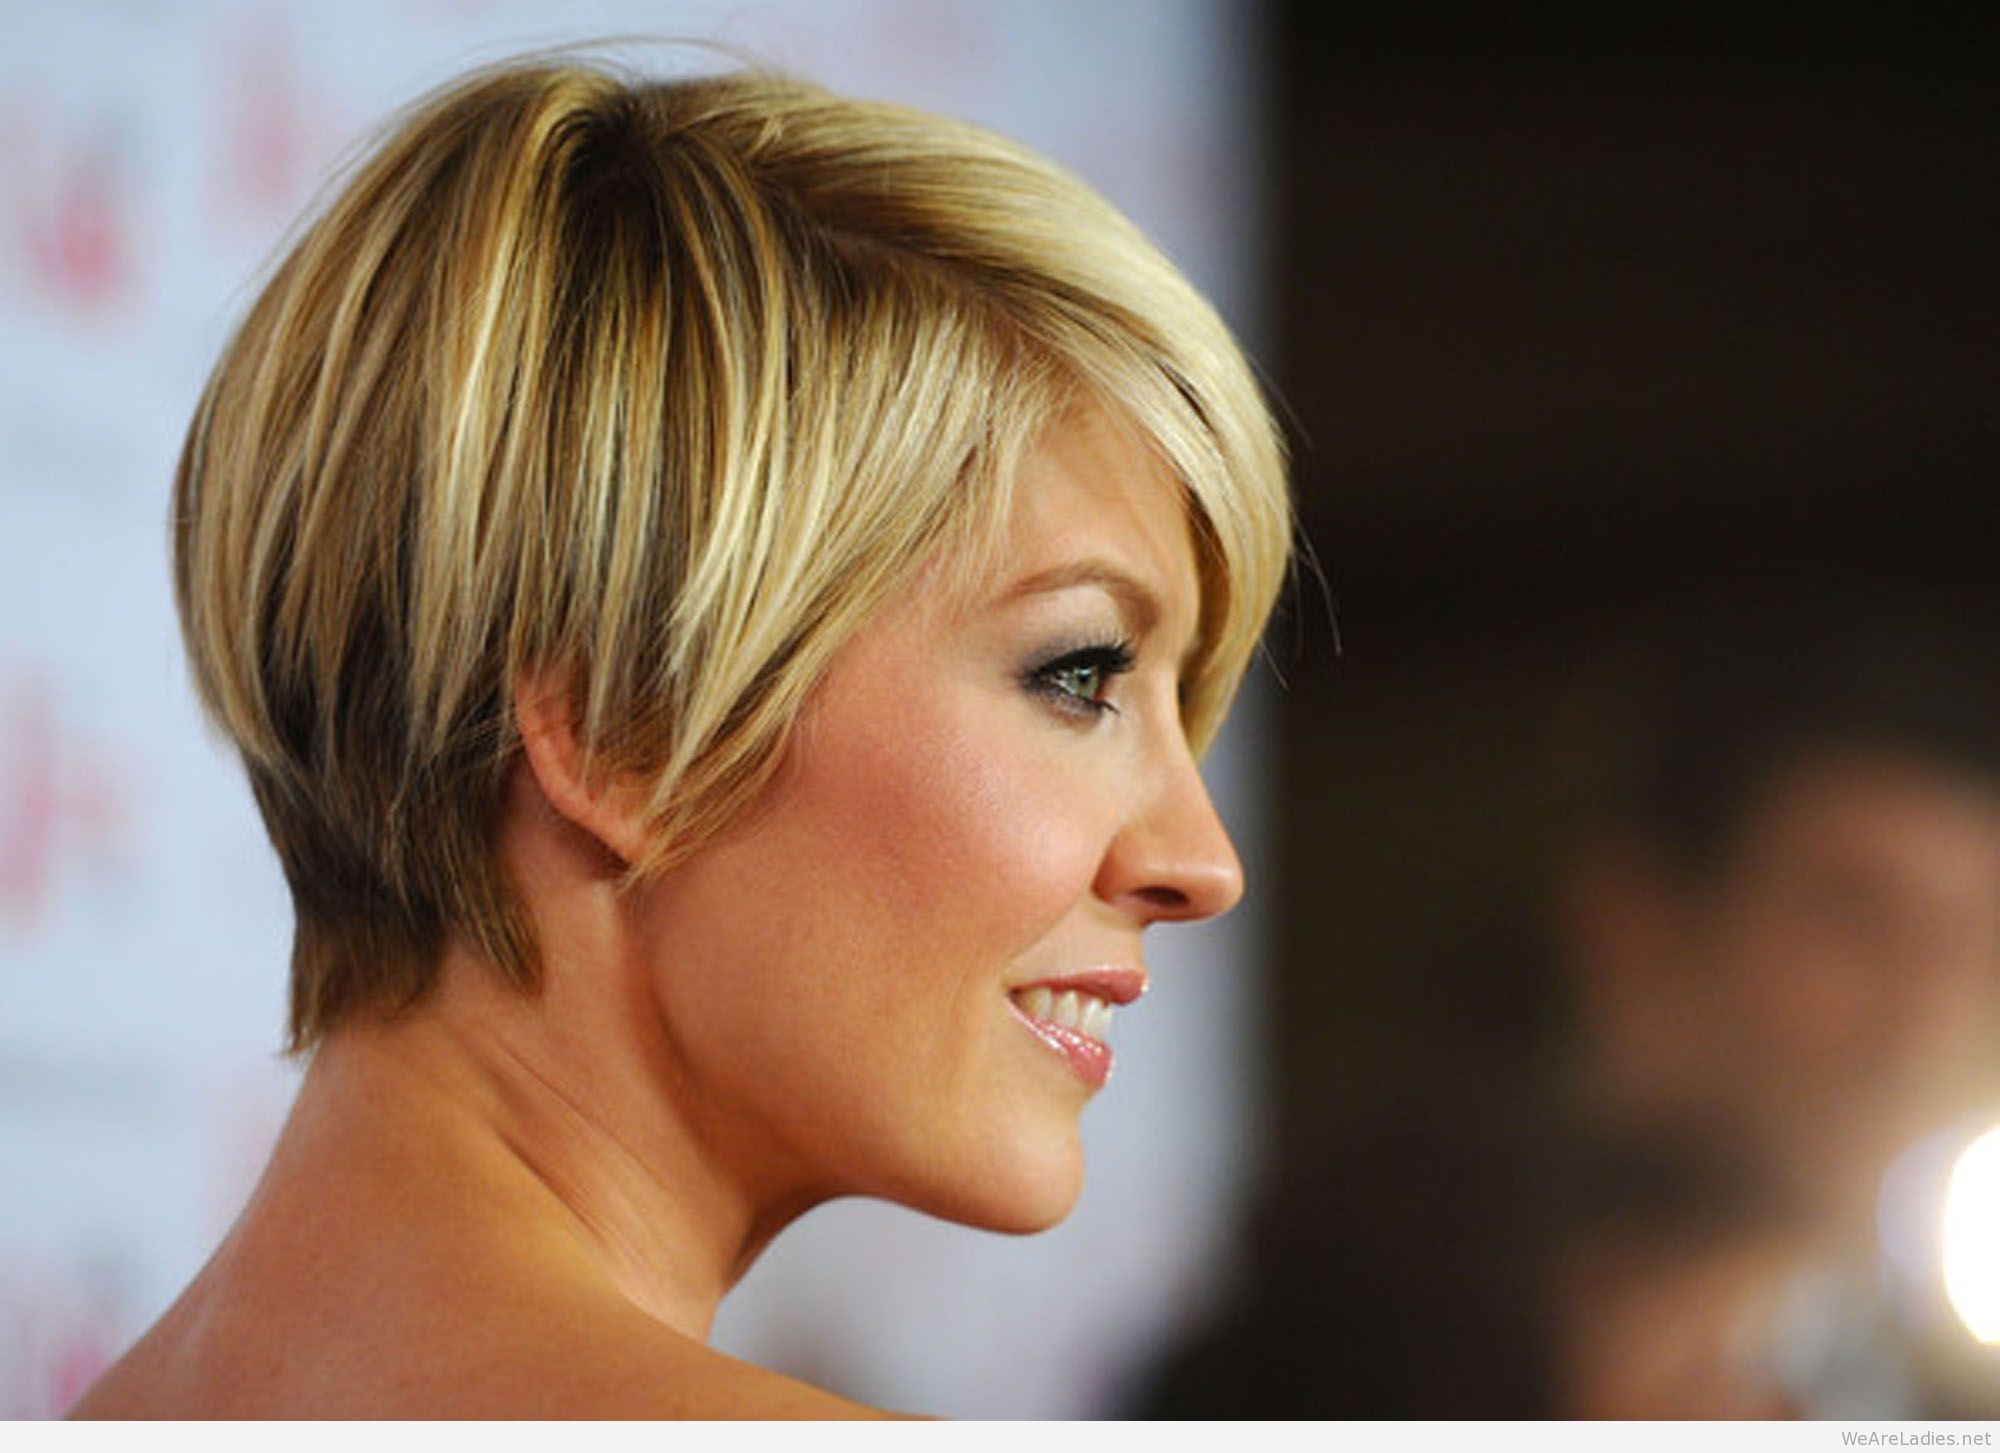 Hairstyles For Thin Hair Over 60 Short Haircuts For Women With Fine Hair 60  Shorthairstylesfor